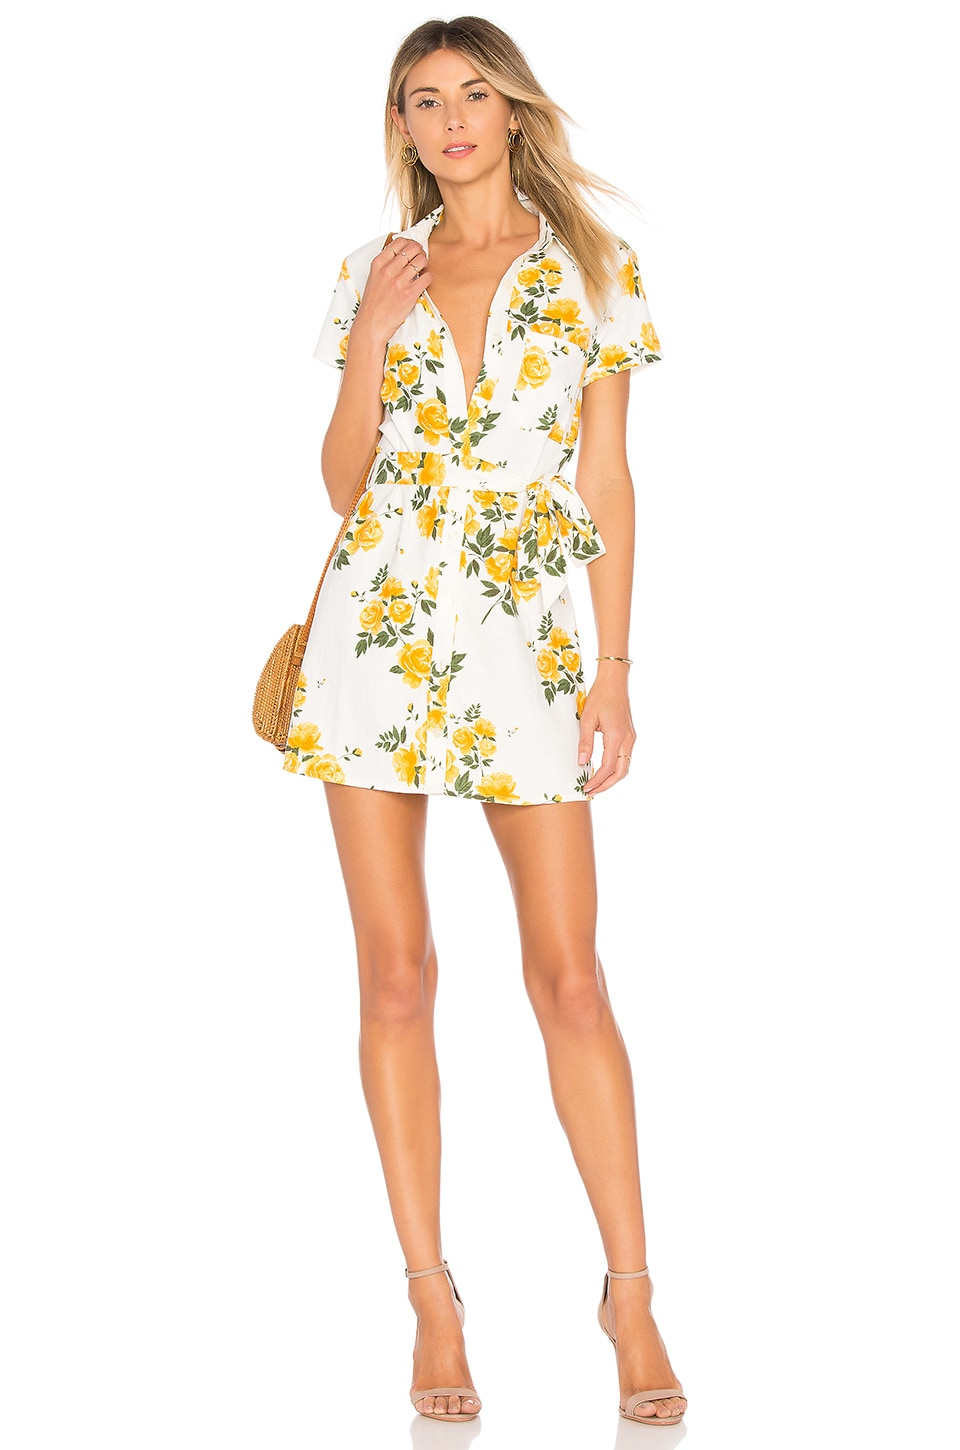 L'Academie The Kendra Dress in Yellow Rose